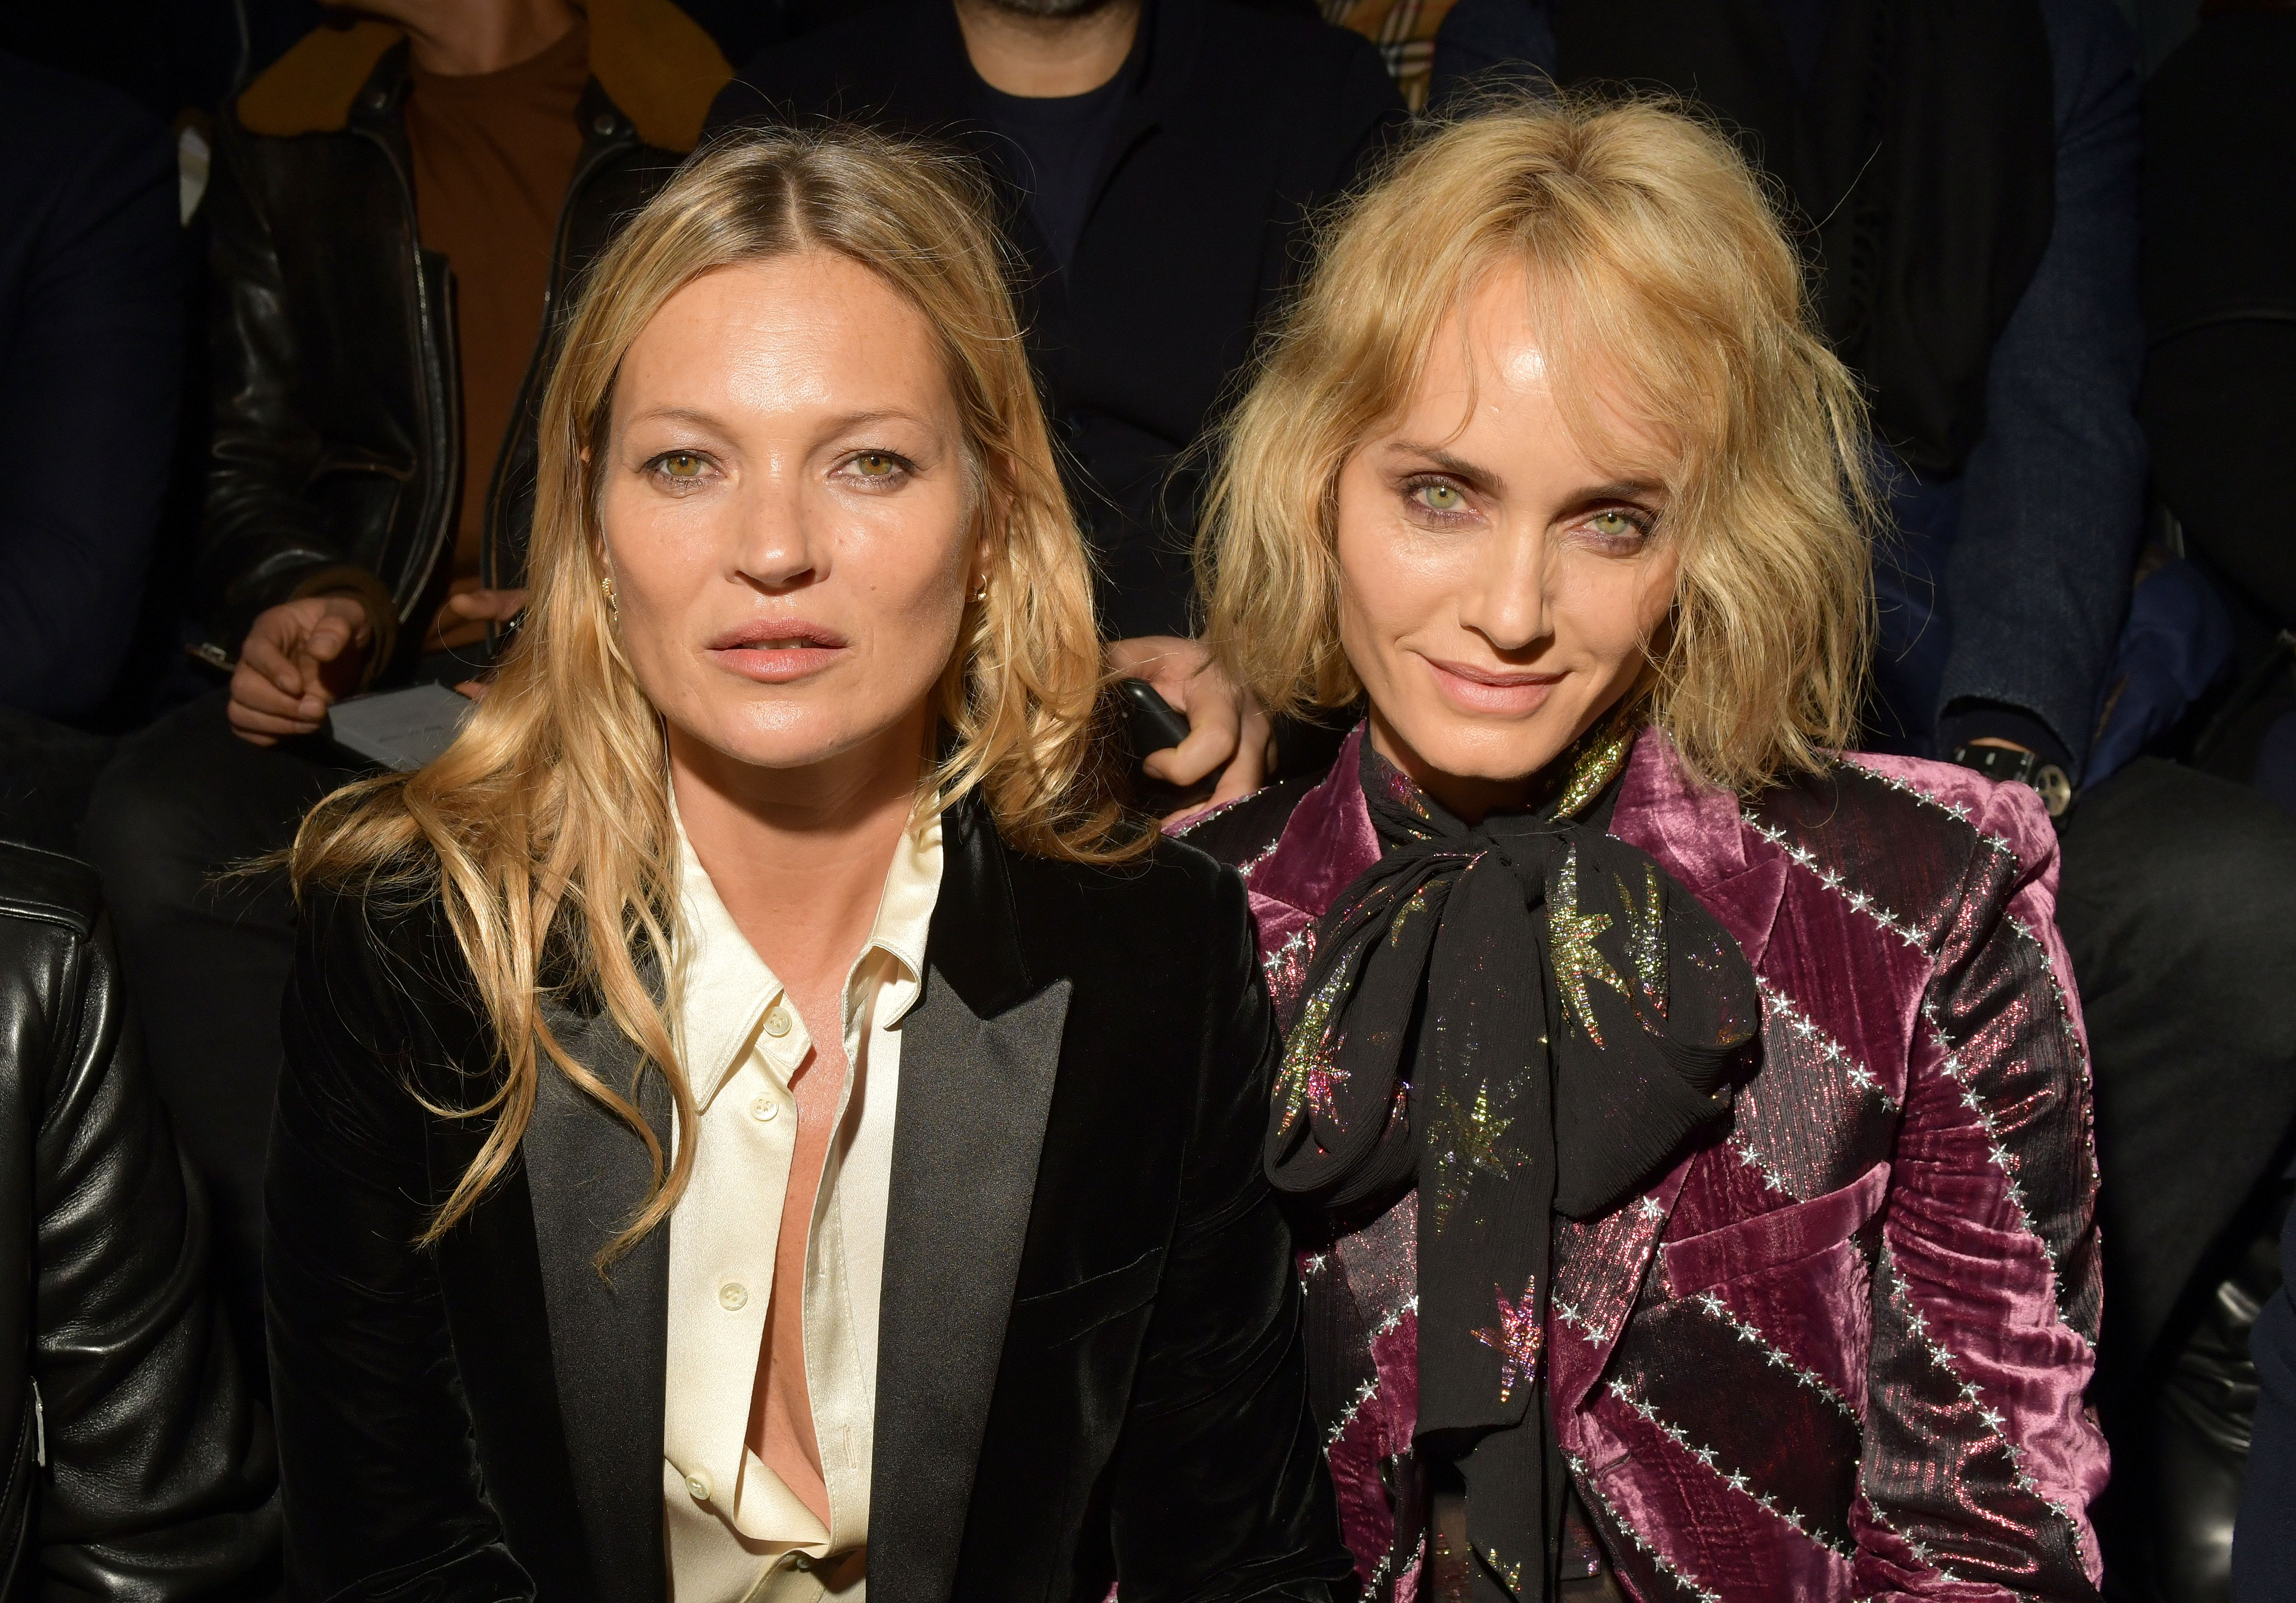 Kate Moss and Amber Valletta